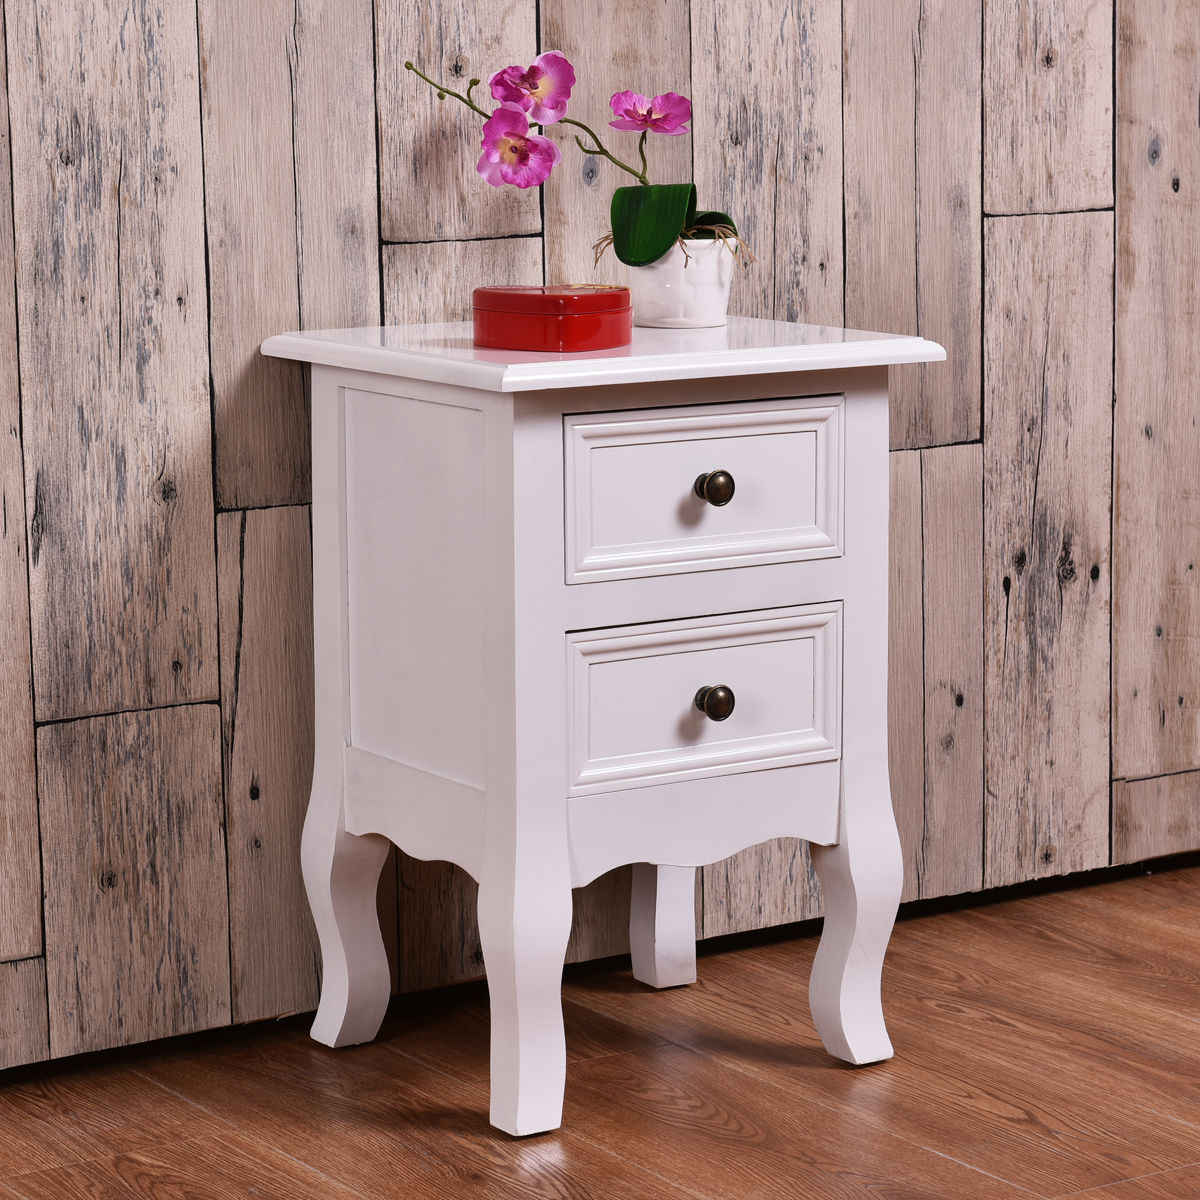 Giantex White Curved Legs Accent Side End Table Modern Nigh stand Bedroom Furniture with Drawers Nightstand HW54090